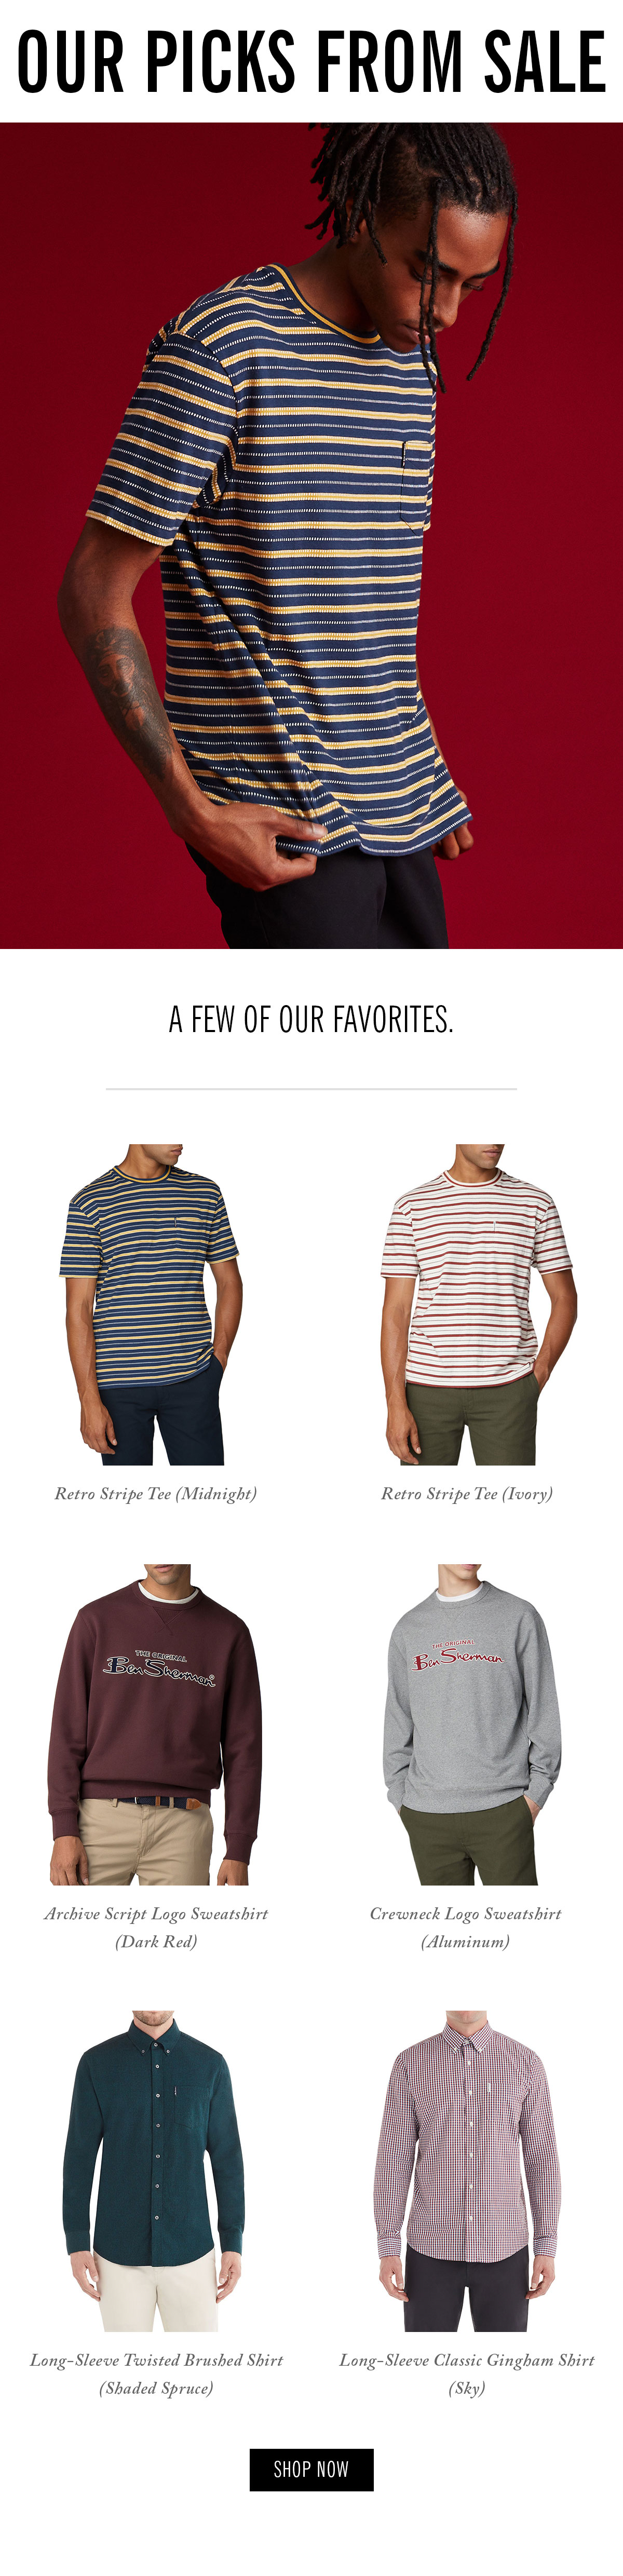 Our picks from sale | Men's shirts, t-shirts, sweatshirts, button-down shirts | Shop Now